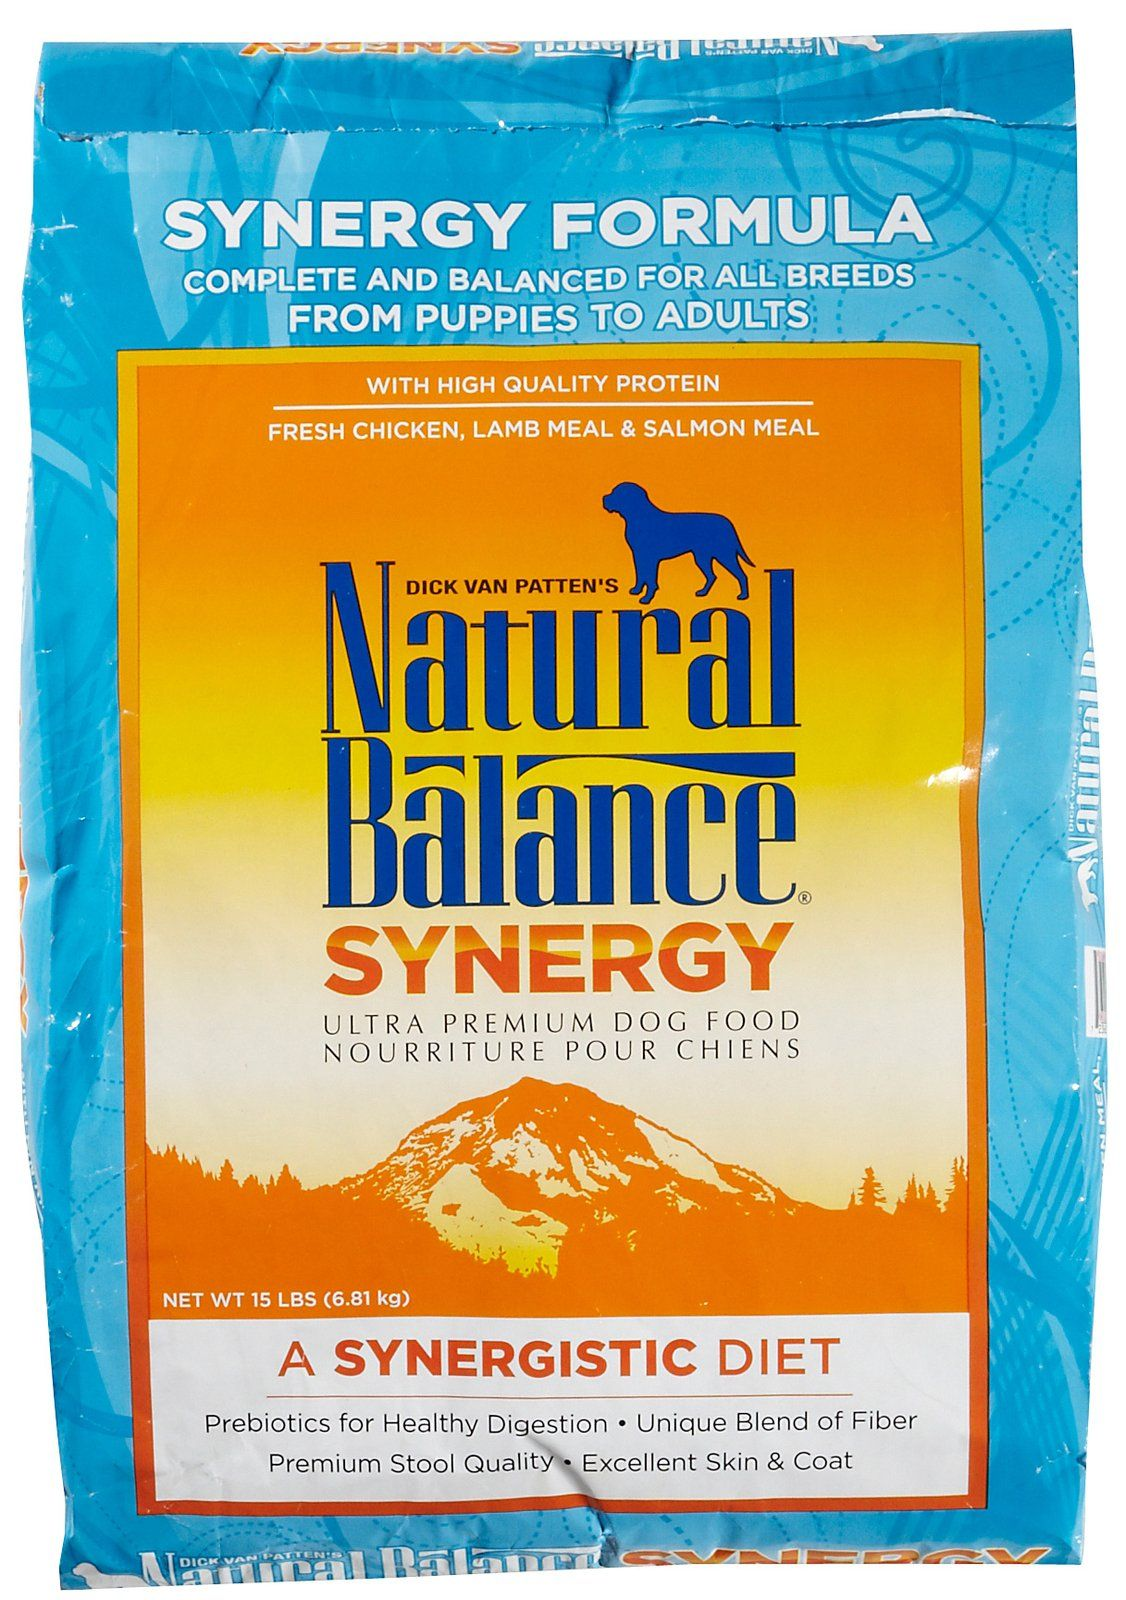 Natural Balance Original Ultra Premium Synergy Dog Food Dog Food